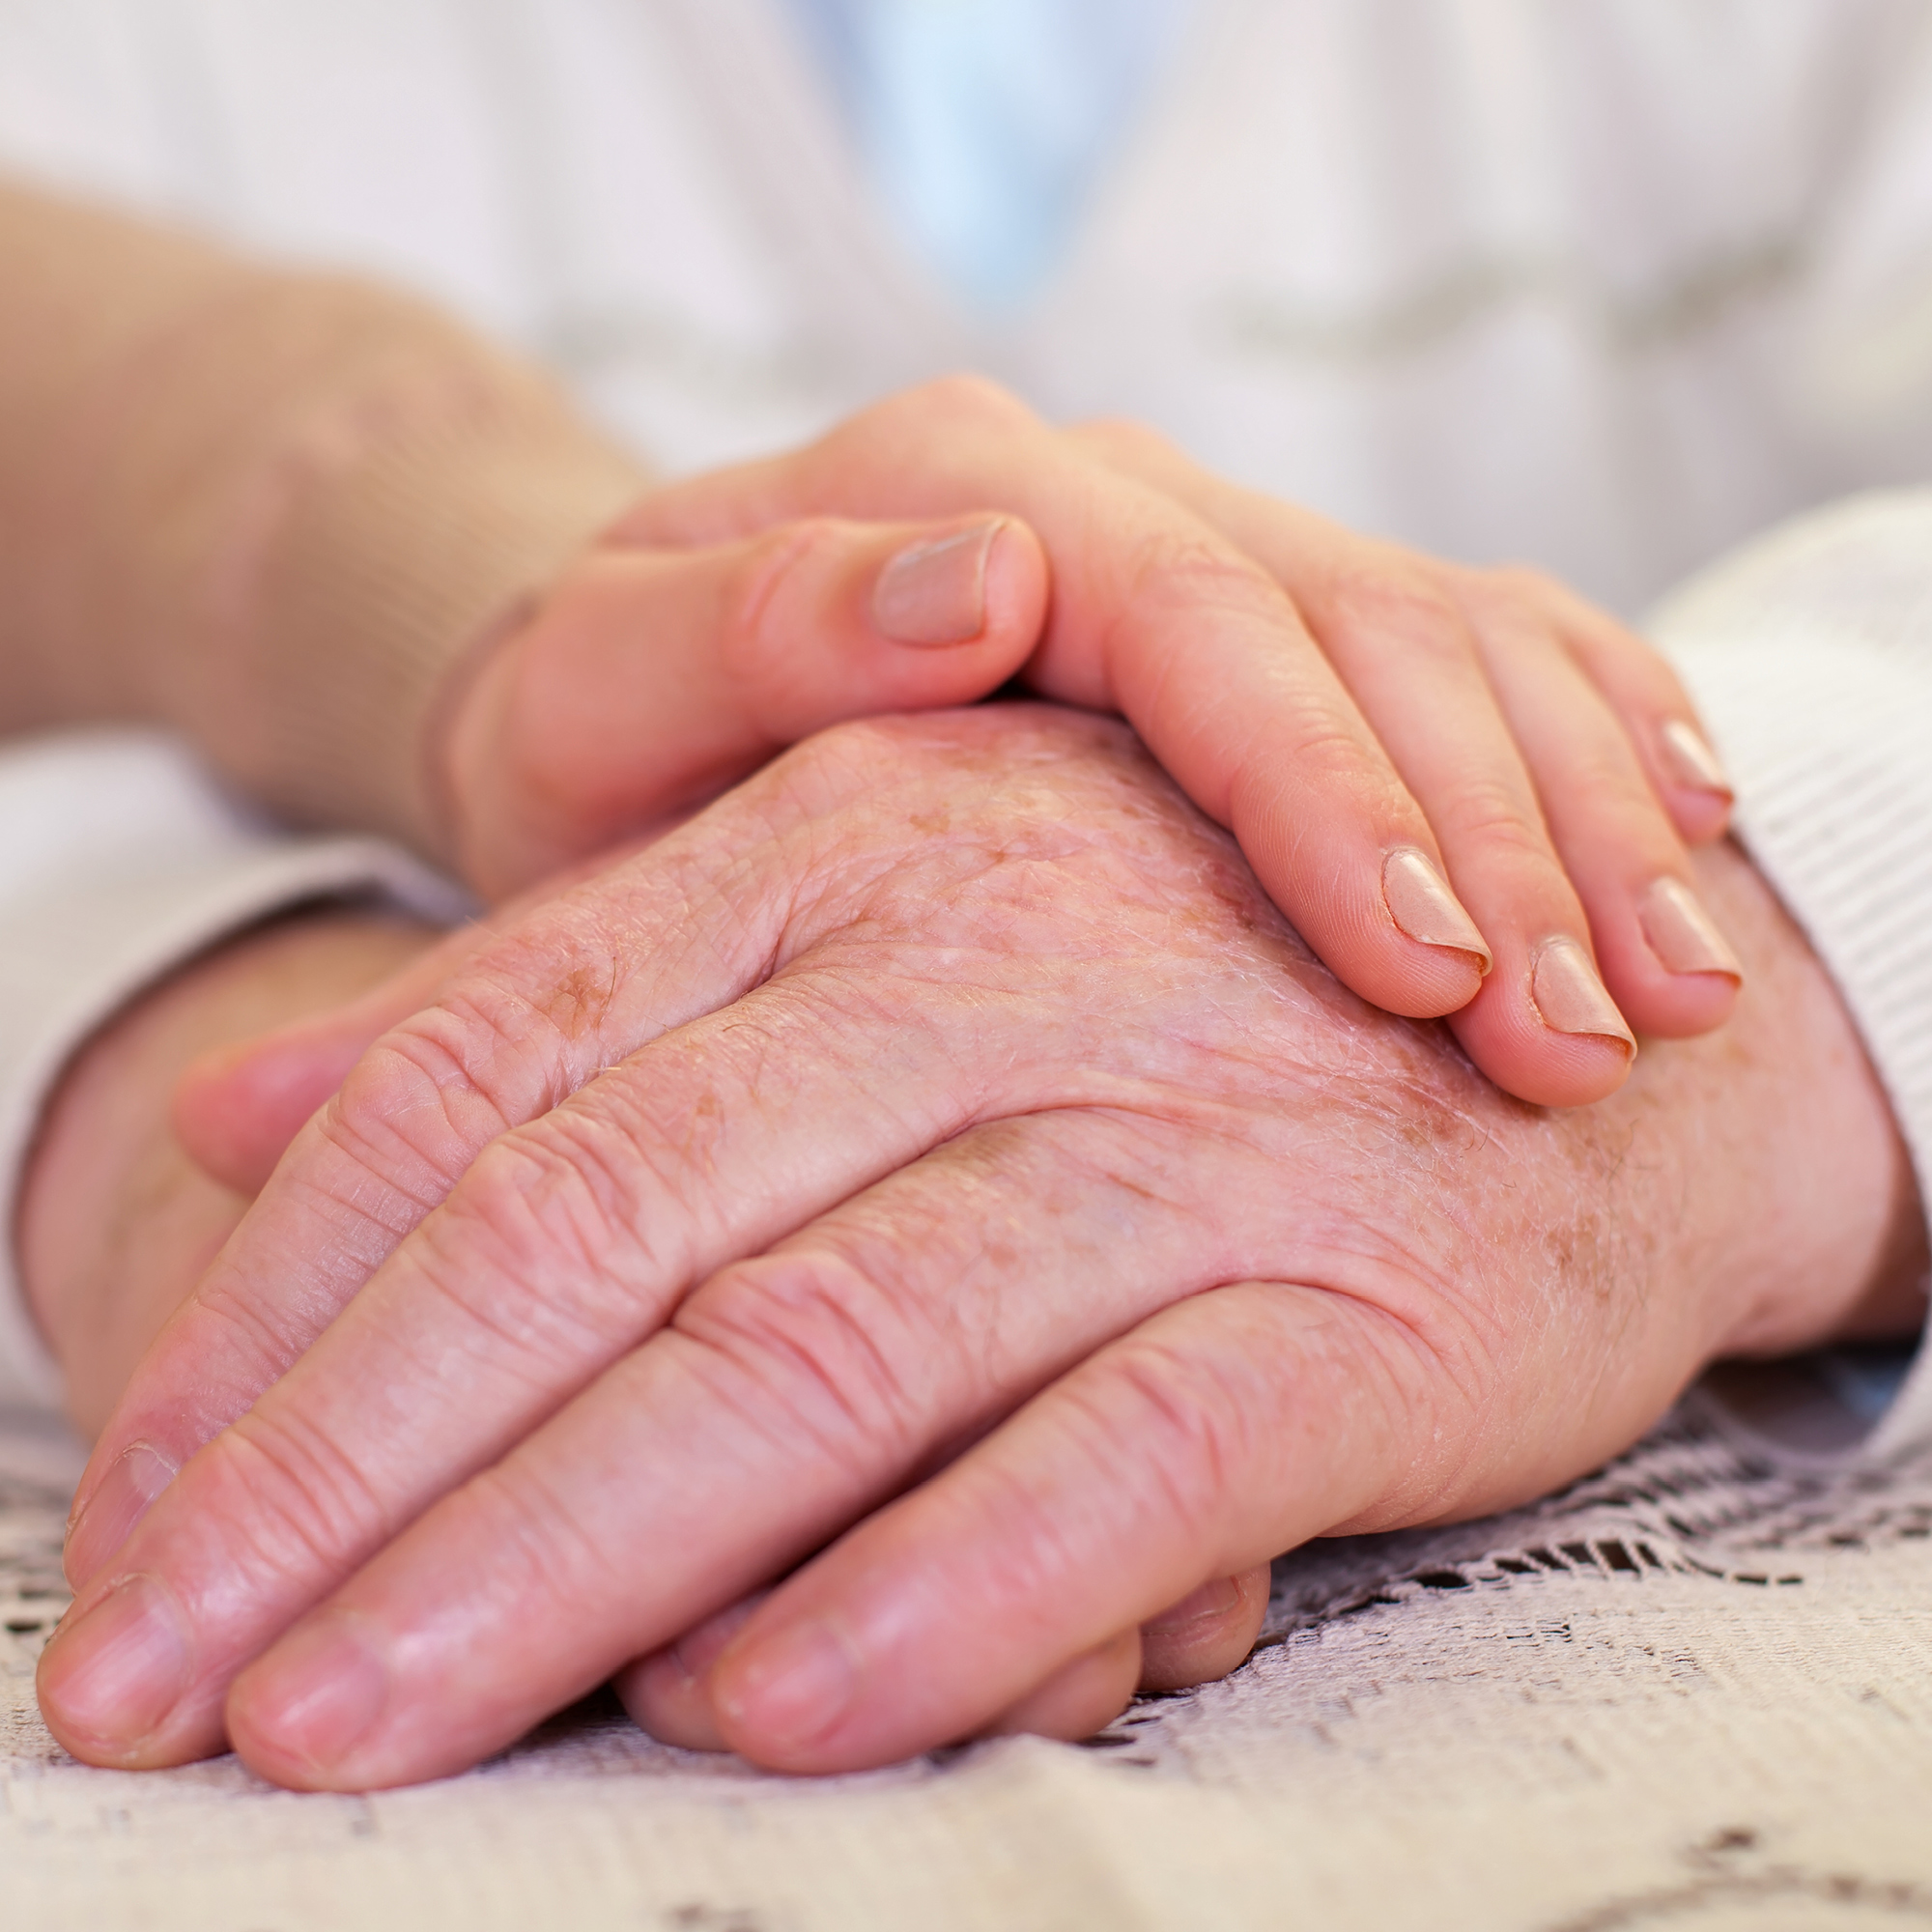 Caregiver For An Aging Parent ~ My Journey, My Experiences, My Guilt.  The process yet continues...